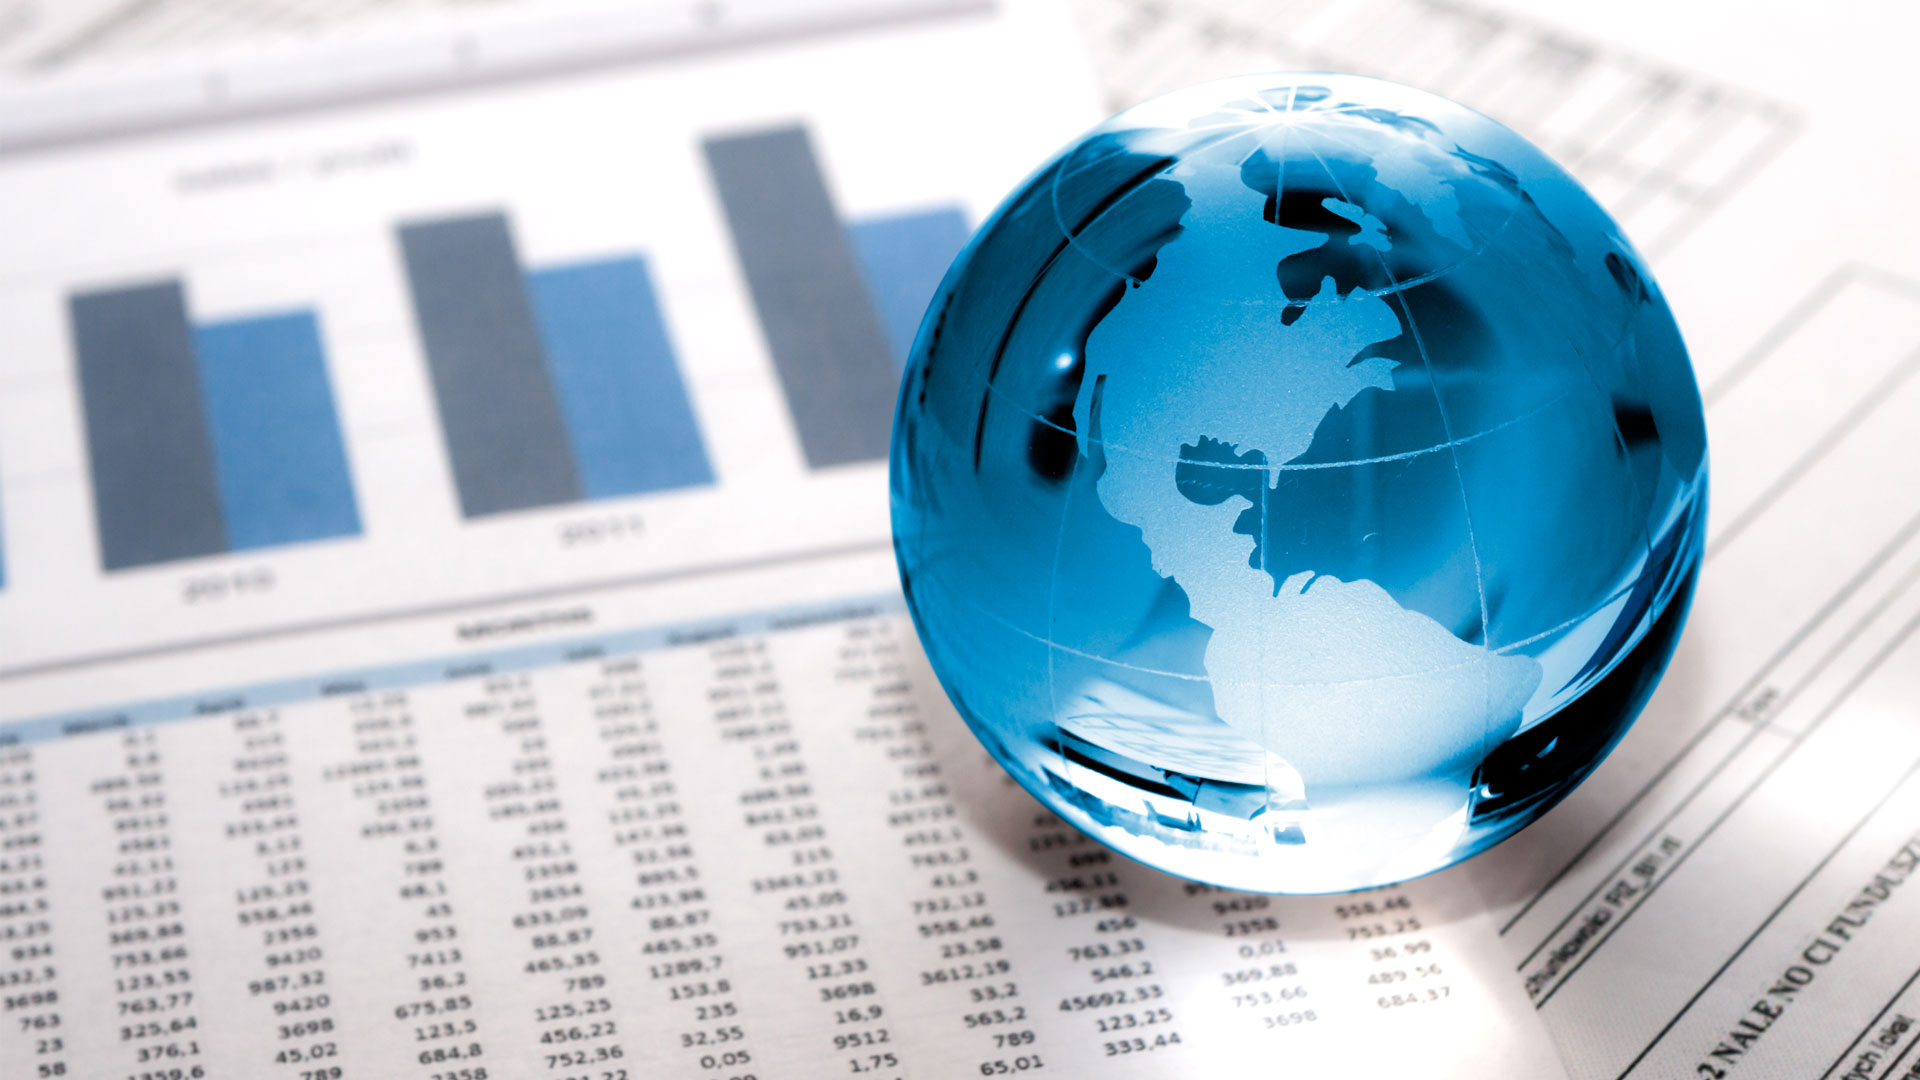 MODERATE GROWTH FOR HOUSING MARKETS ACROSS THE GLOBE